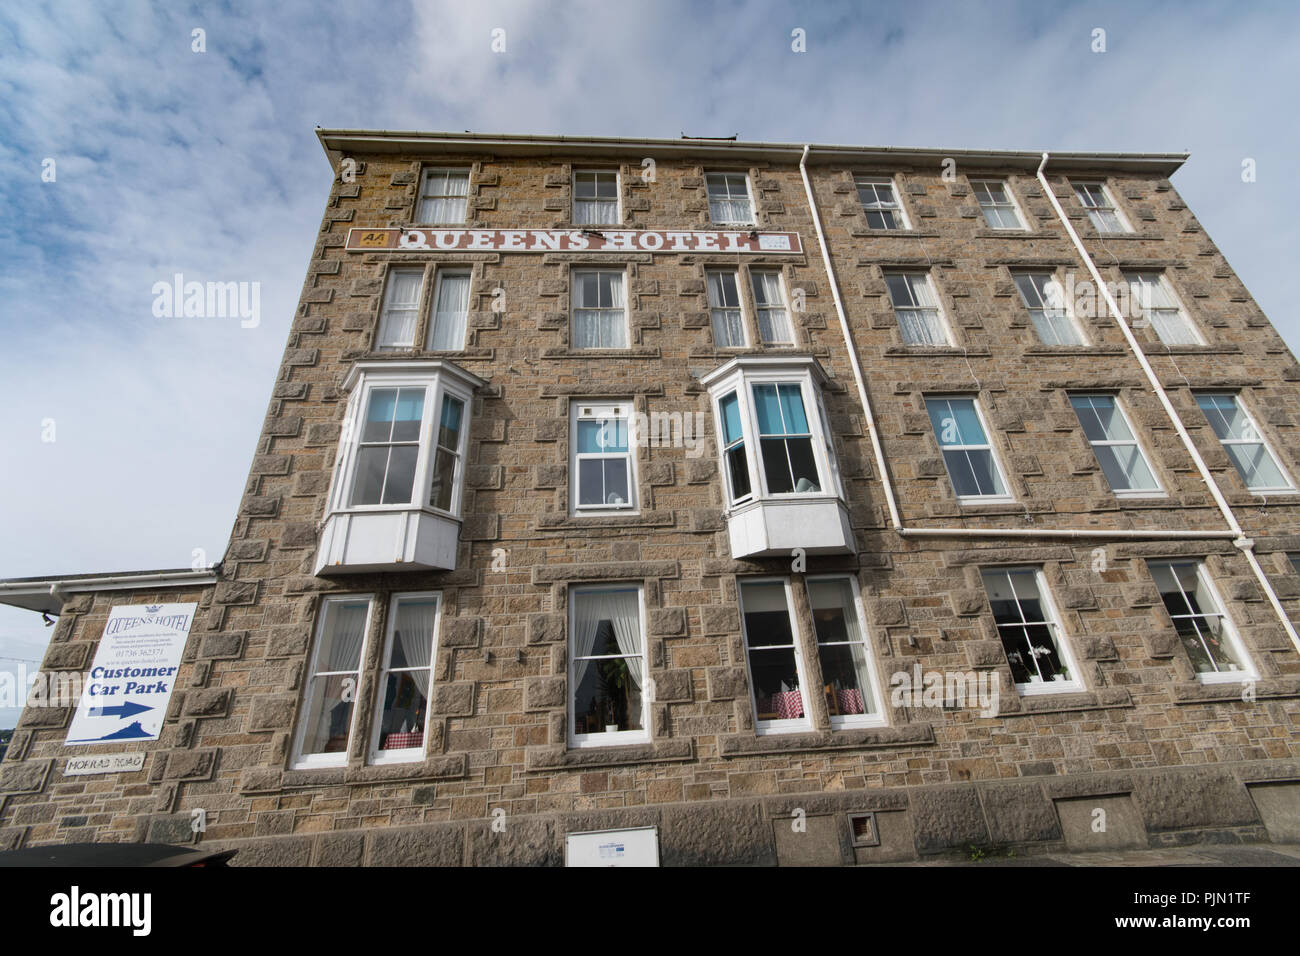 The Queens Hotel on Penzance sea front - Stock Image